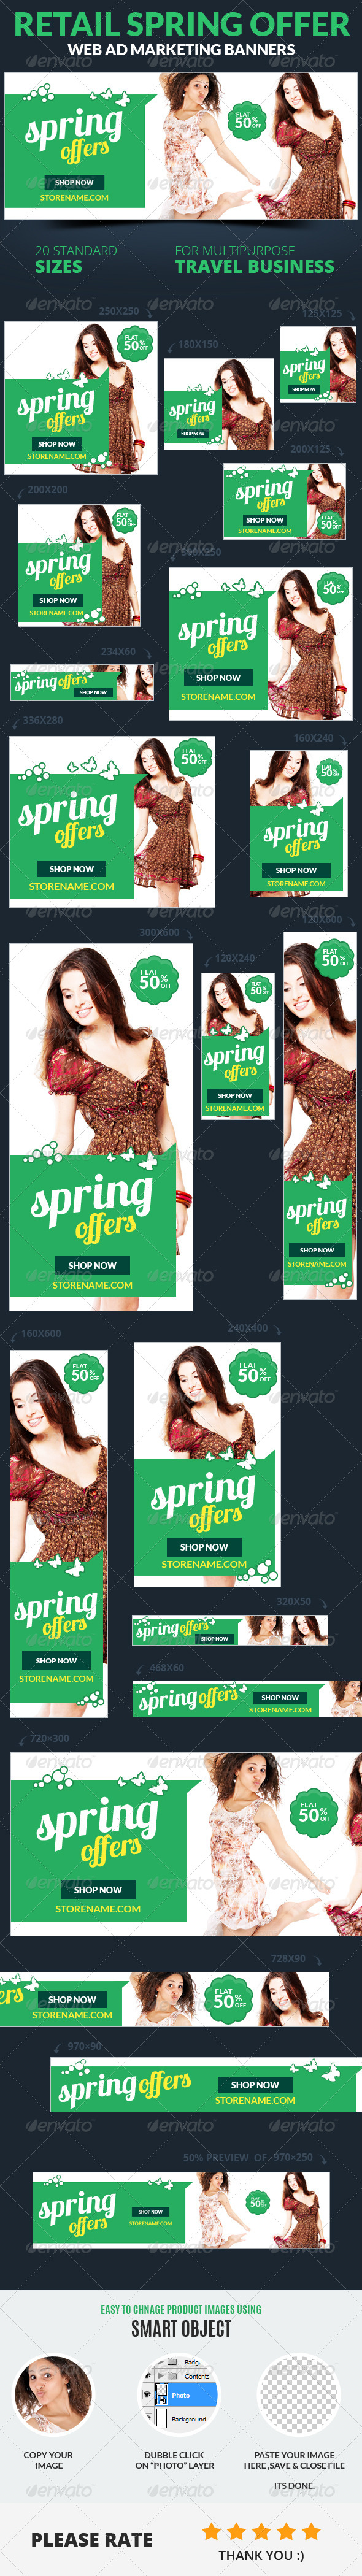 GraphicRiver Retail Spring Offer Web Ad Marketing Banners 7019081